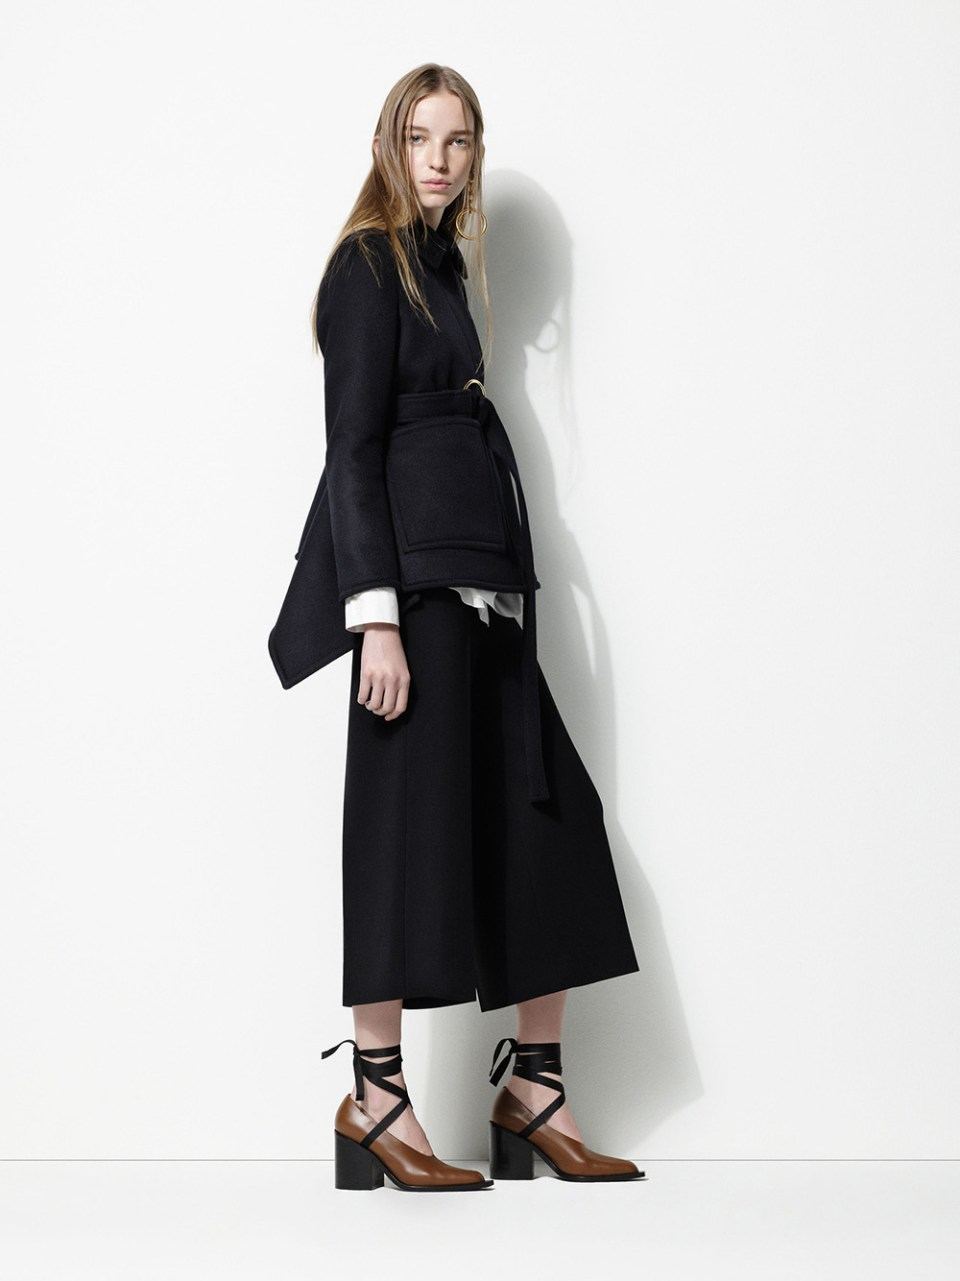 marni_pre_fall_2016_lookbook_06_jpg_5652_north_1382x_black